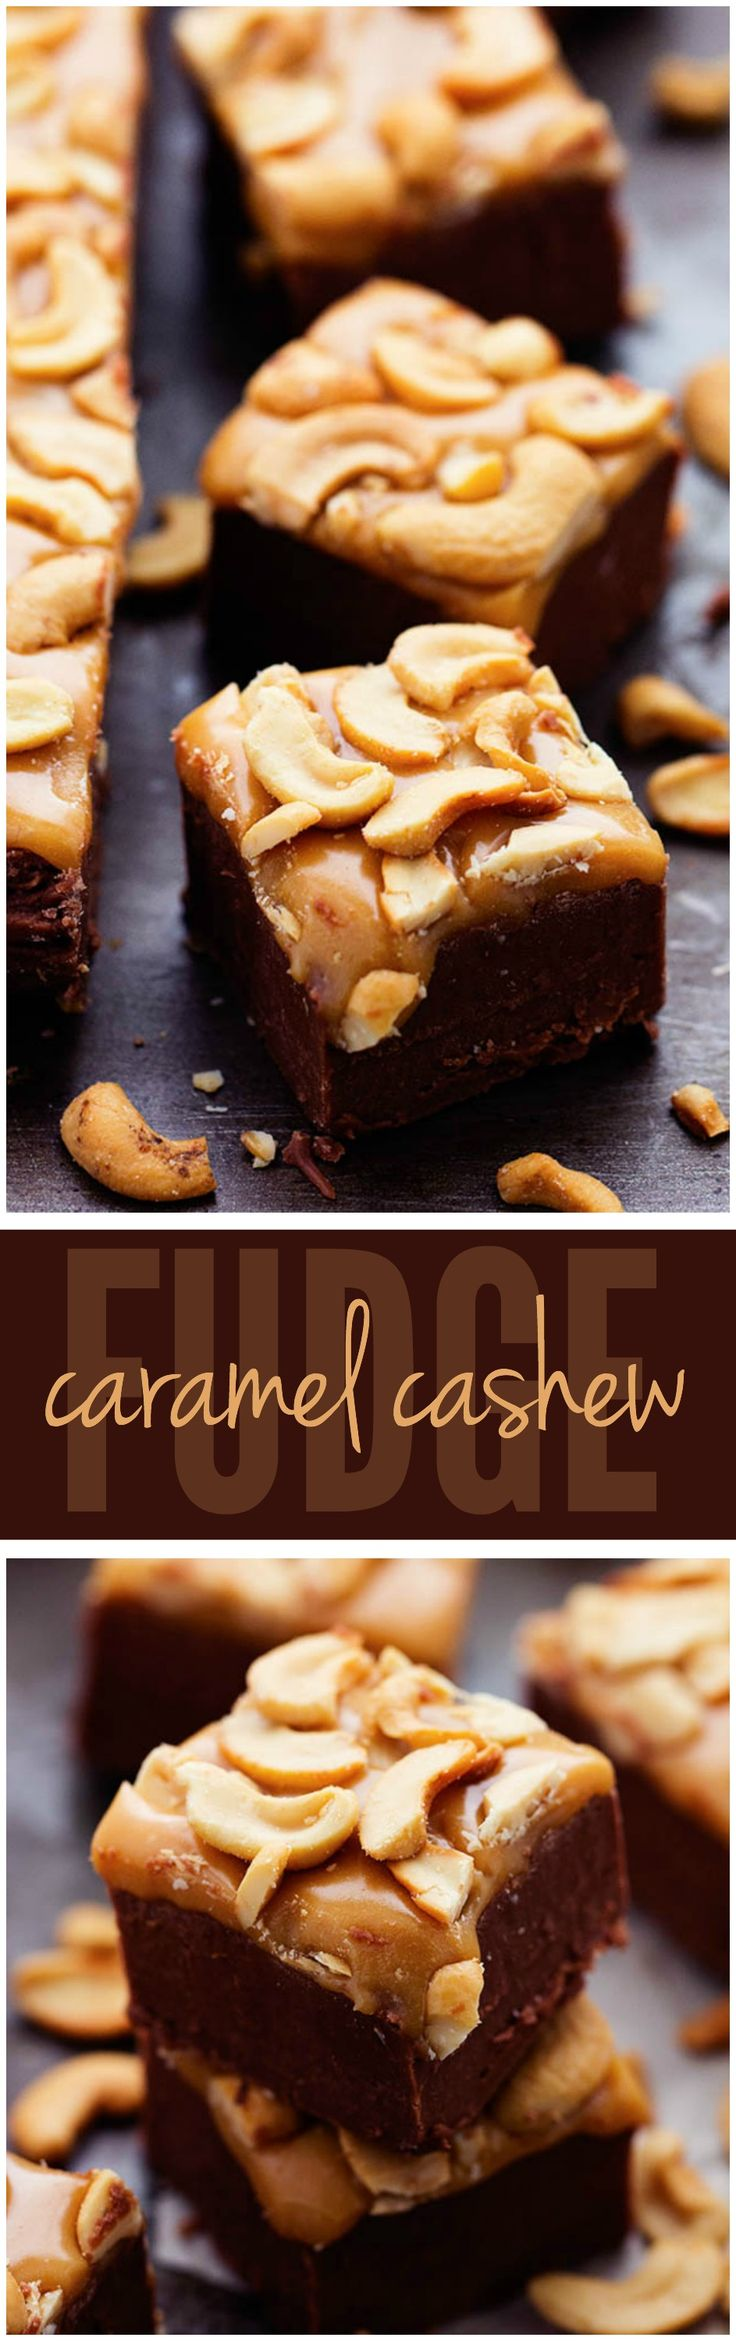 A rich chocolate fudge topped with caramel and cashews. All of my favorite things in one delicious and easy to make fudge!